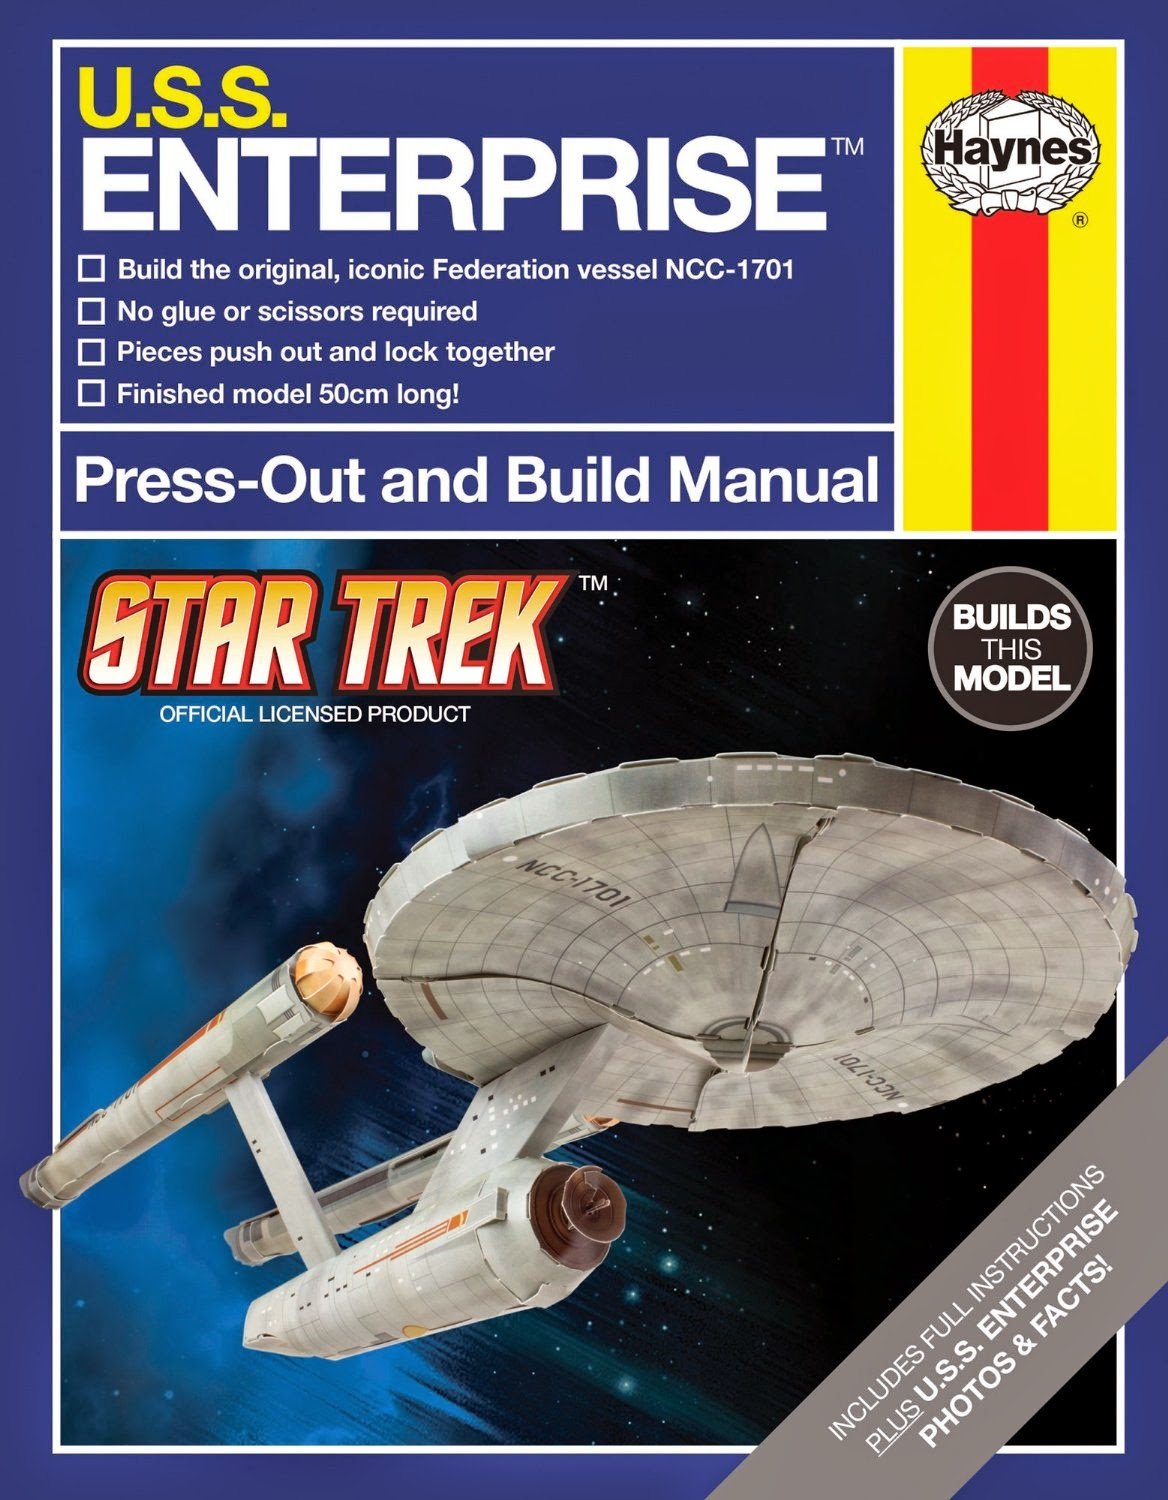 Haynes USS Enterprise Press-Out and Build Manual.jpg